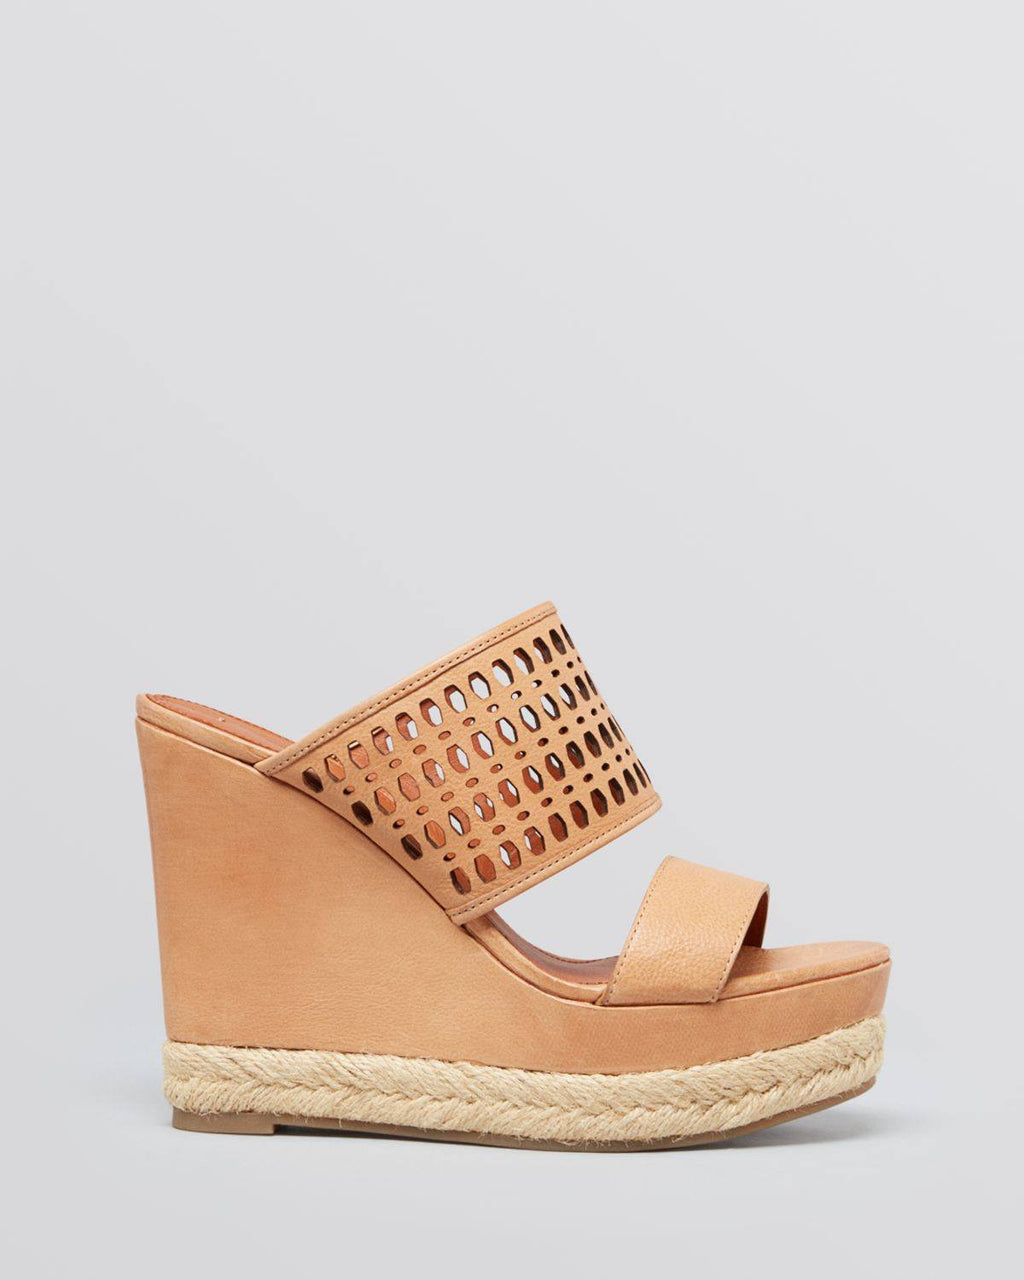 VIA SPIGA Beige Platform Wedge Sandals Marisol-VIA SPIGA-Fashionbarn shop